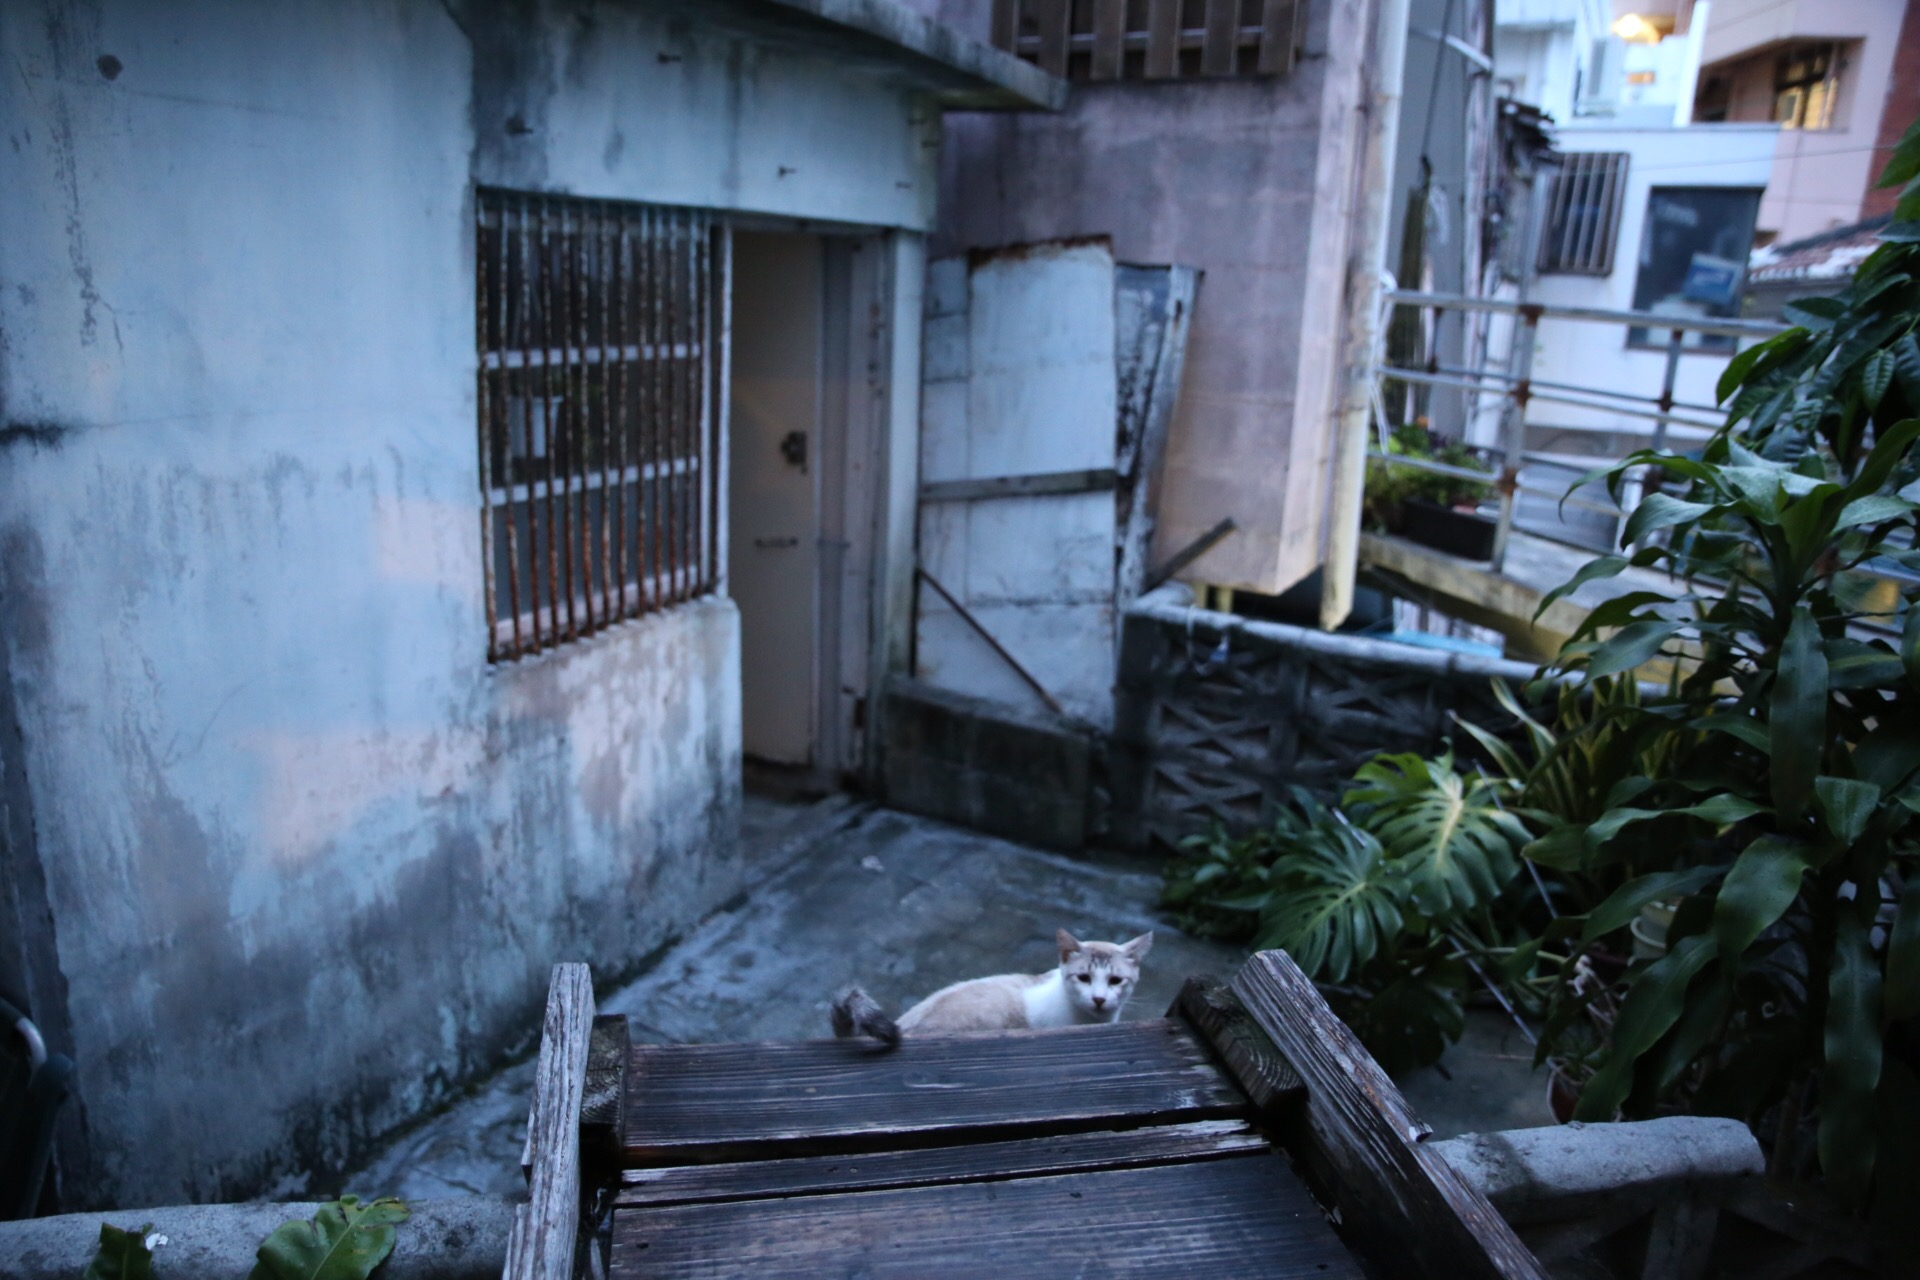 猫 Canon EOS 6D, EF 24-105mm F4L IS USM